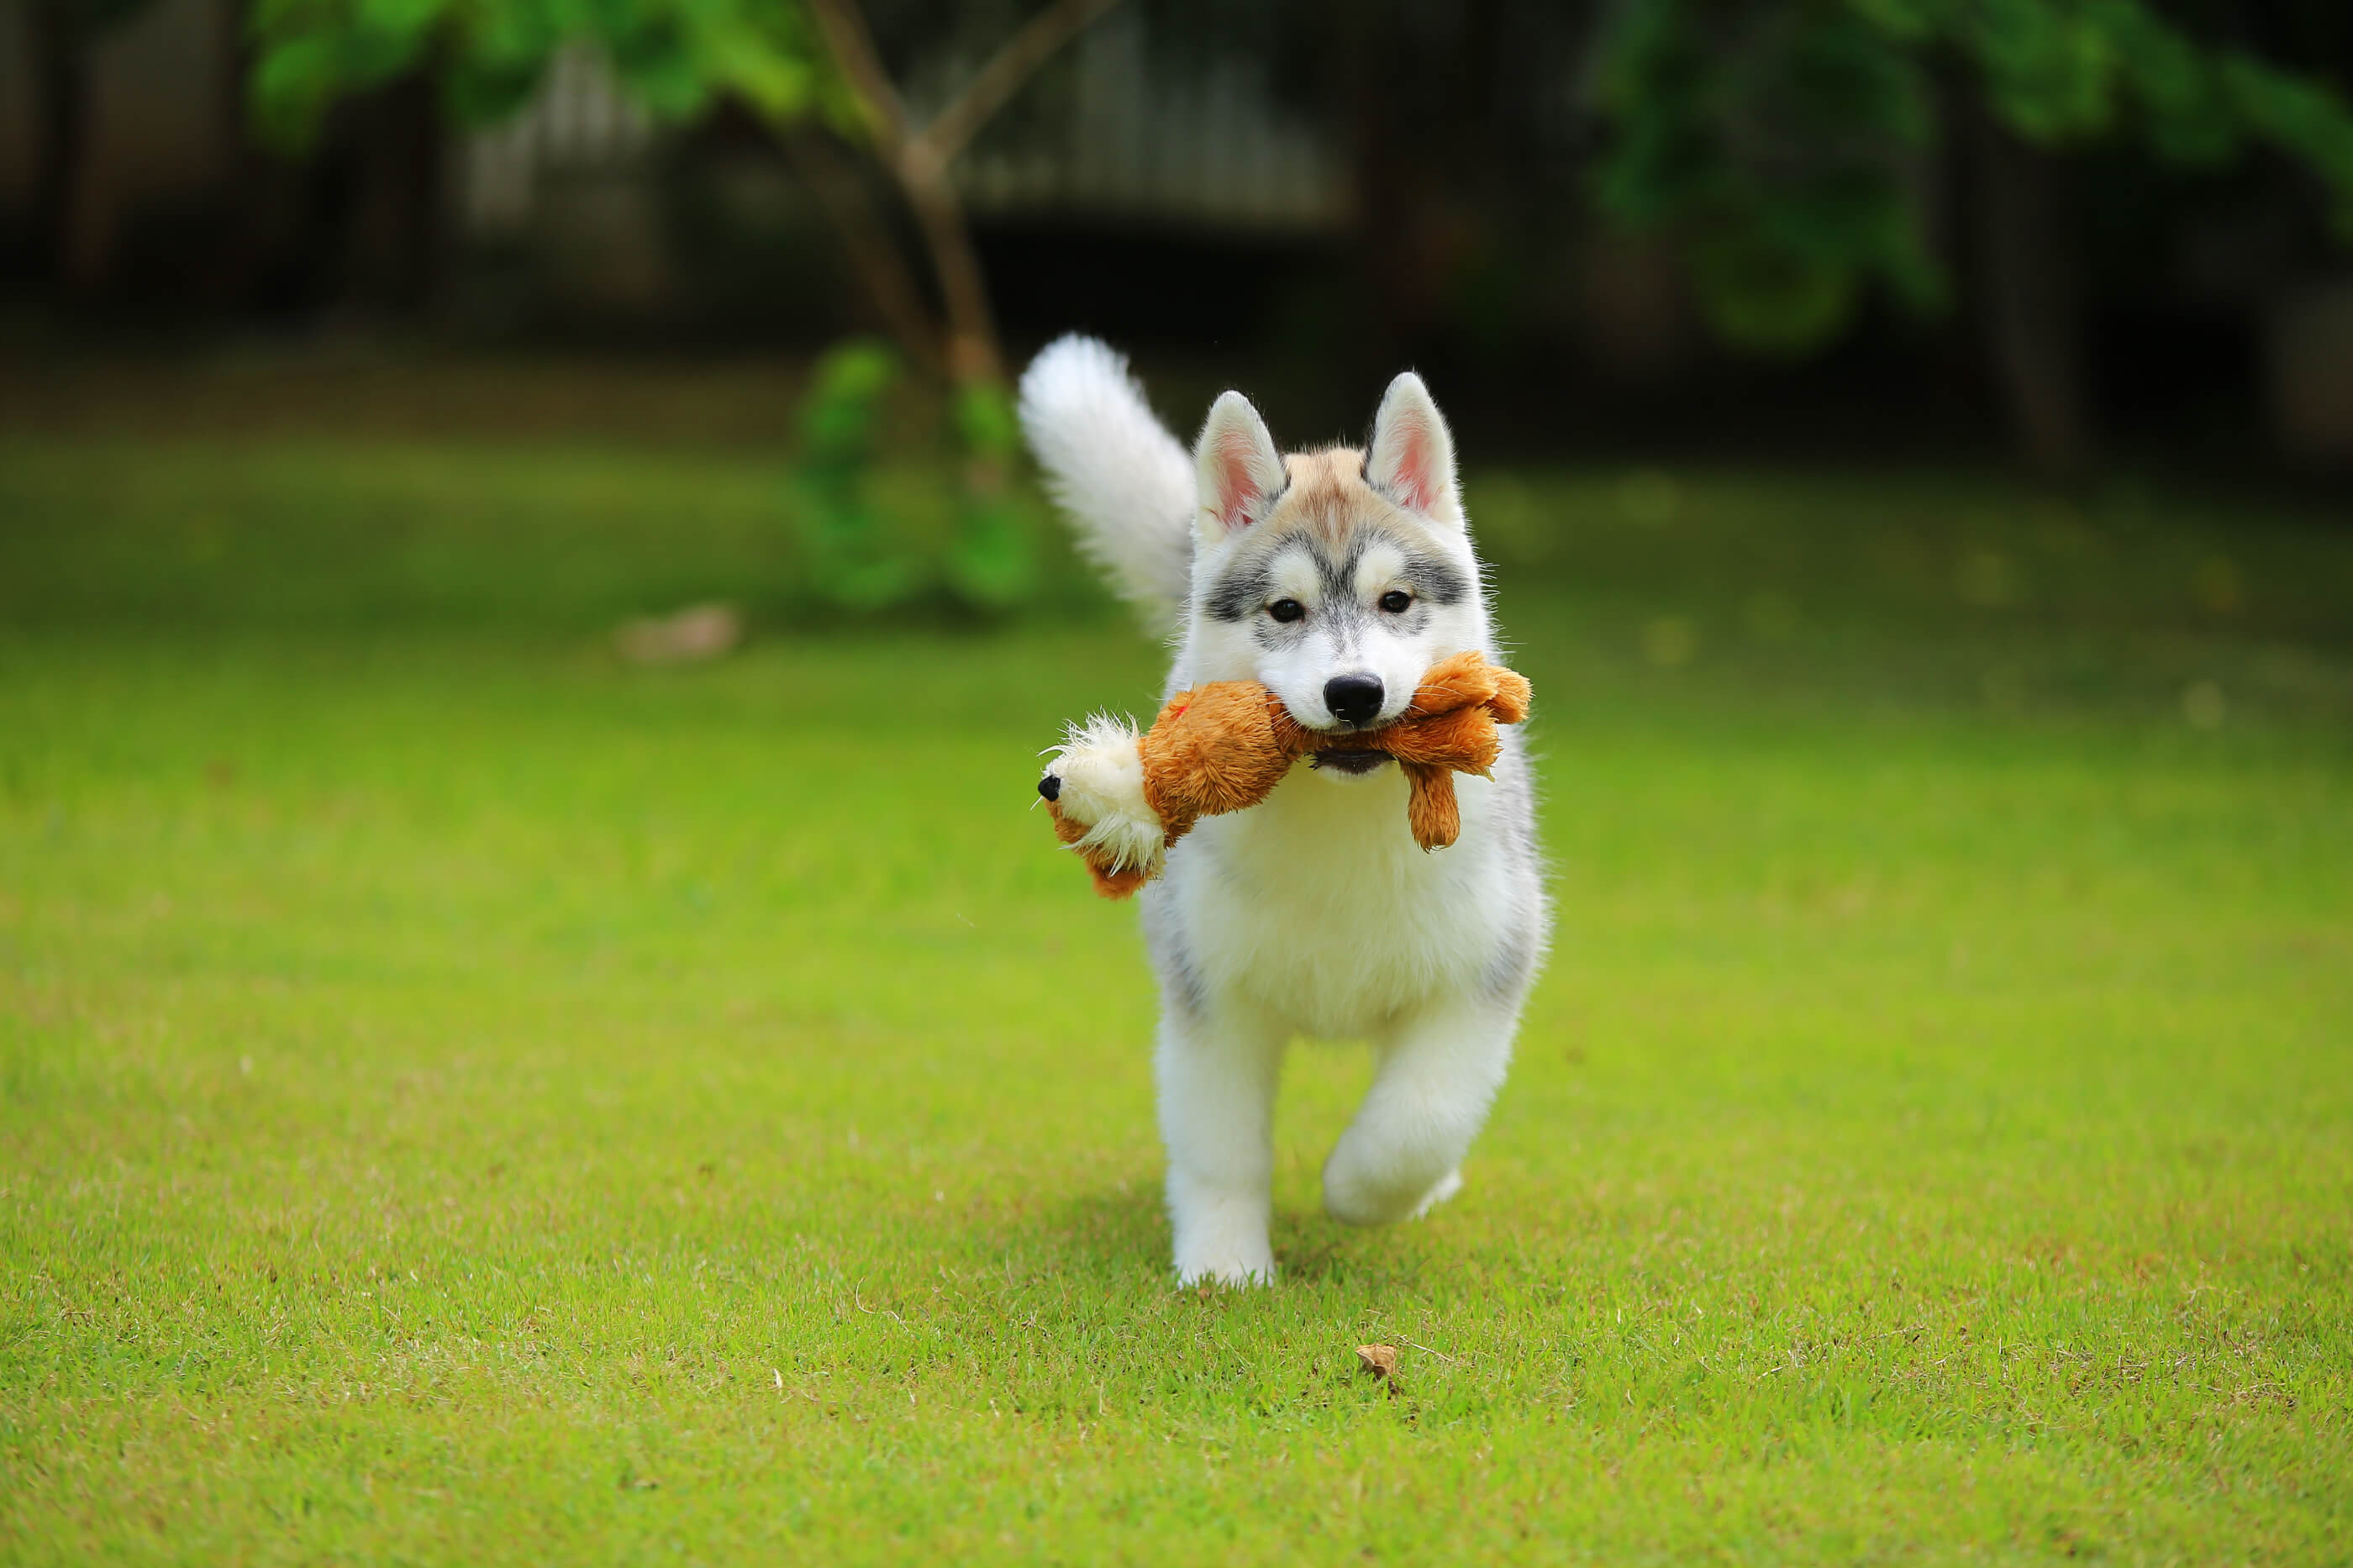 Husky dog running with toy